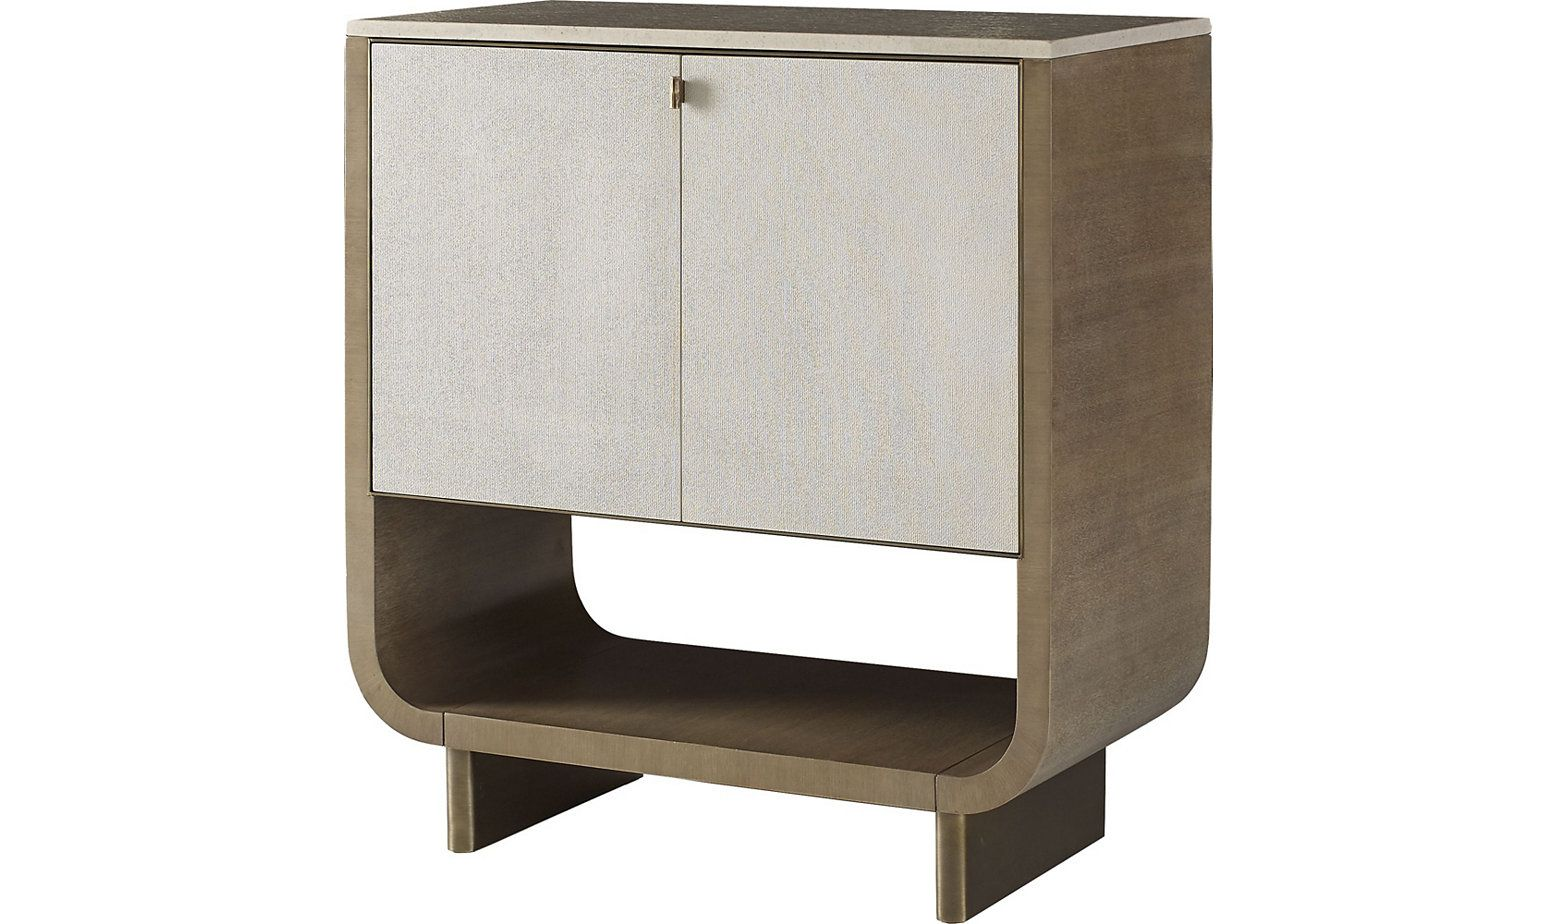 Chalice Cabinet By Barbara Barry   3373 | Baker Furniture